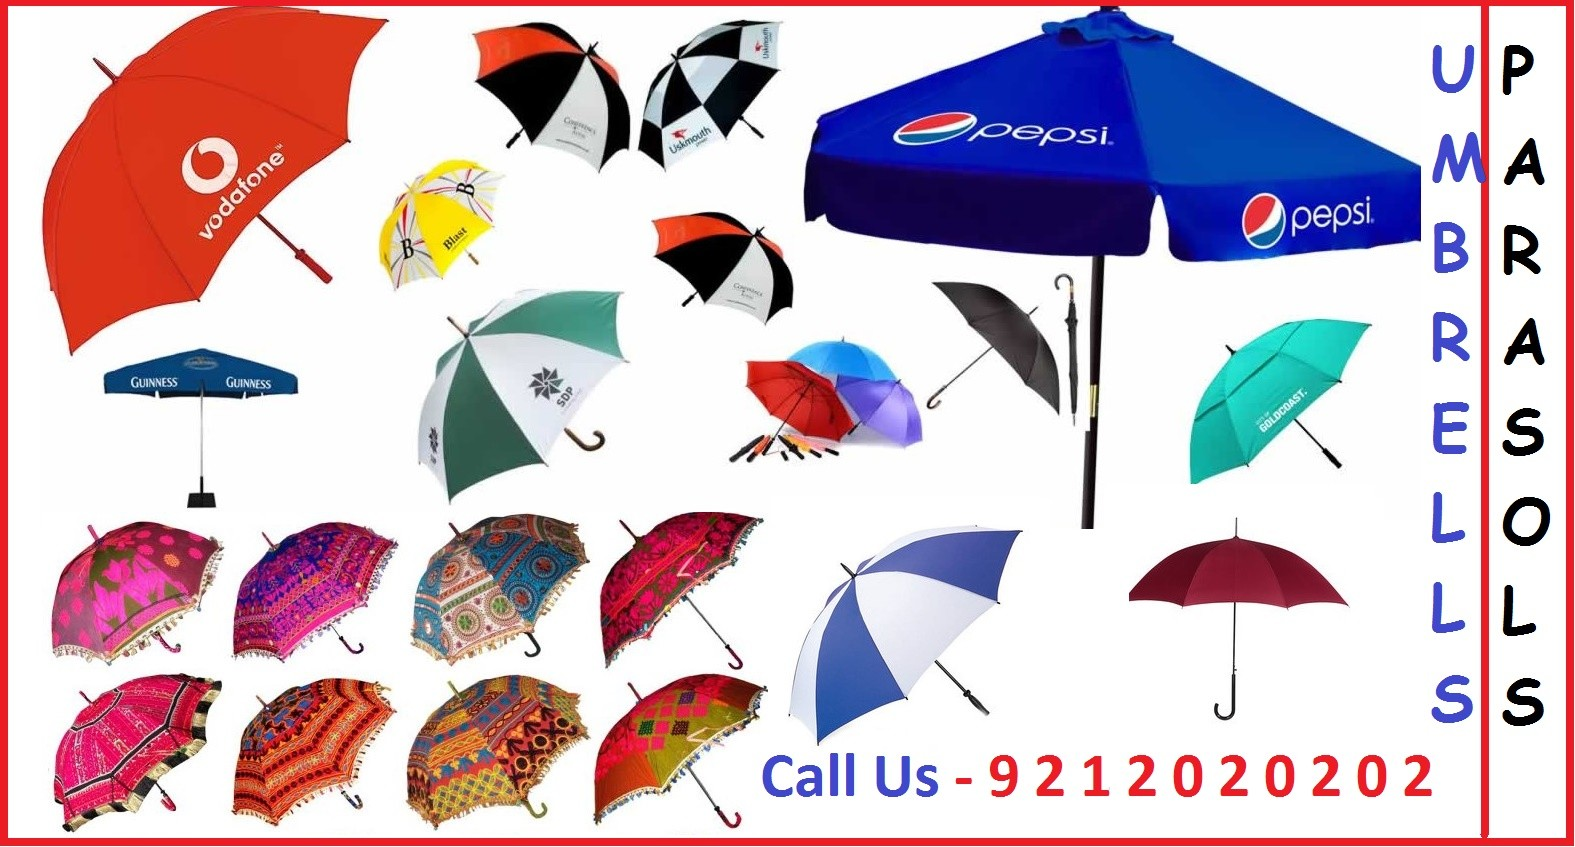 Advertising Umbrella Manufacturers, Suppliers in New Delhi, Supply all over India